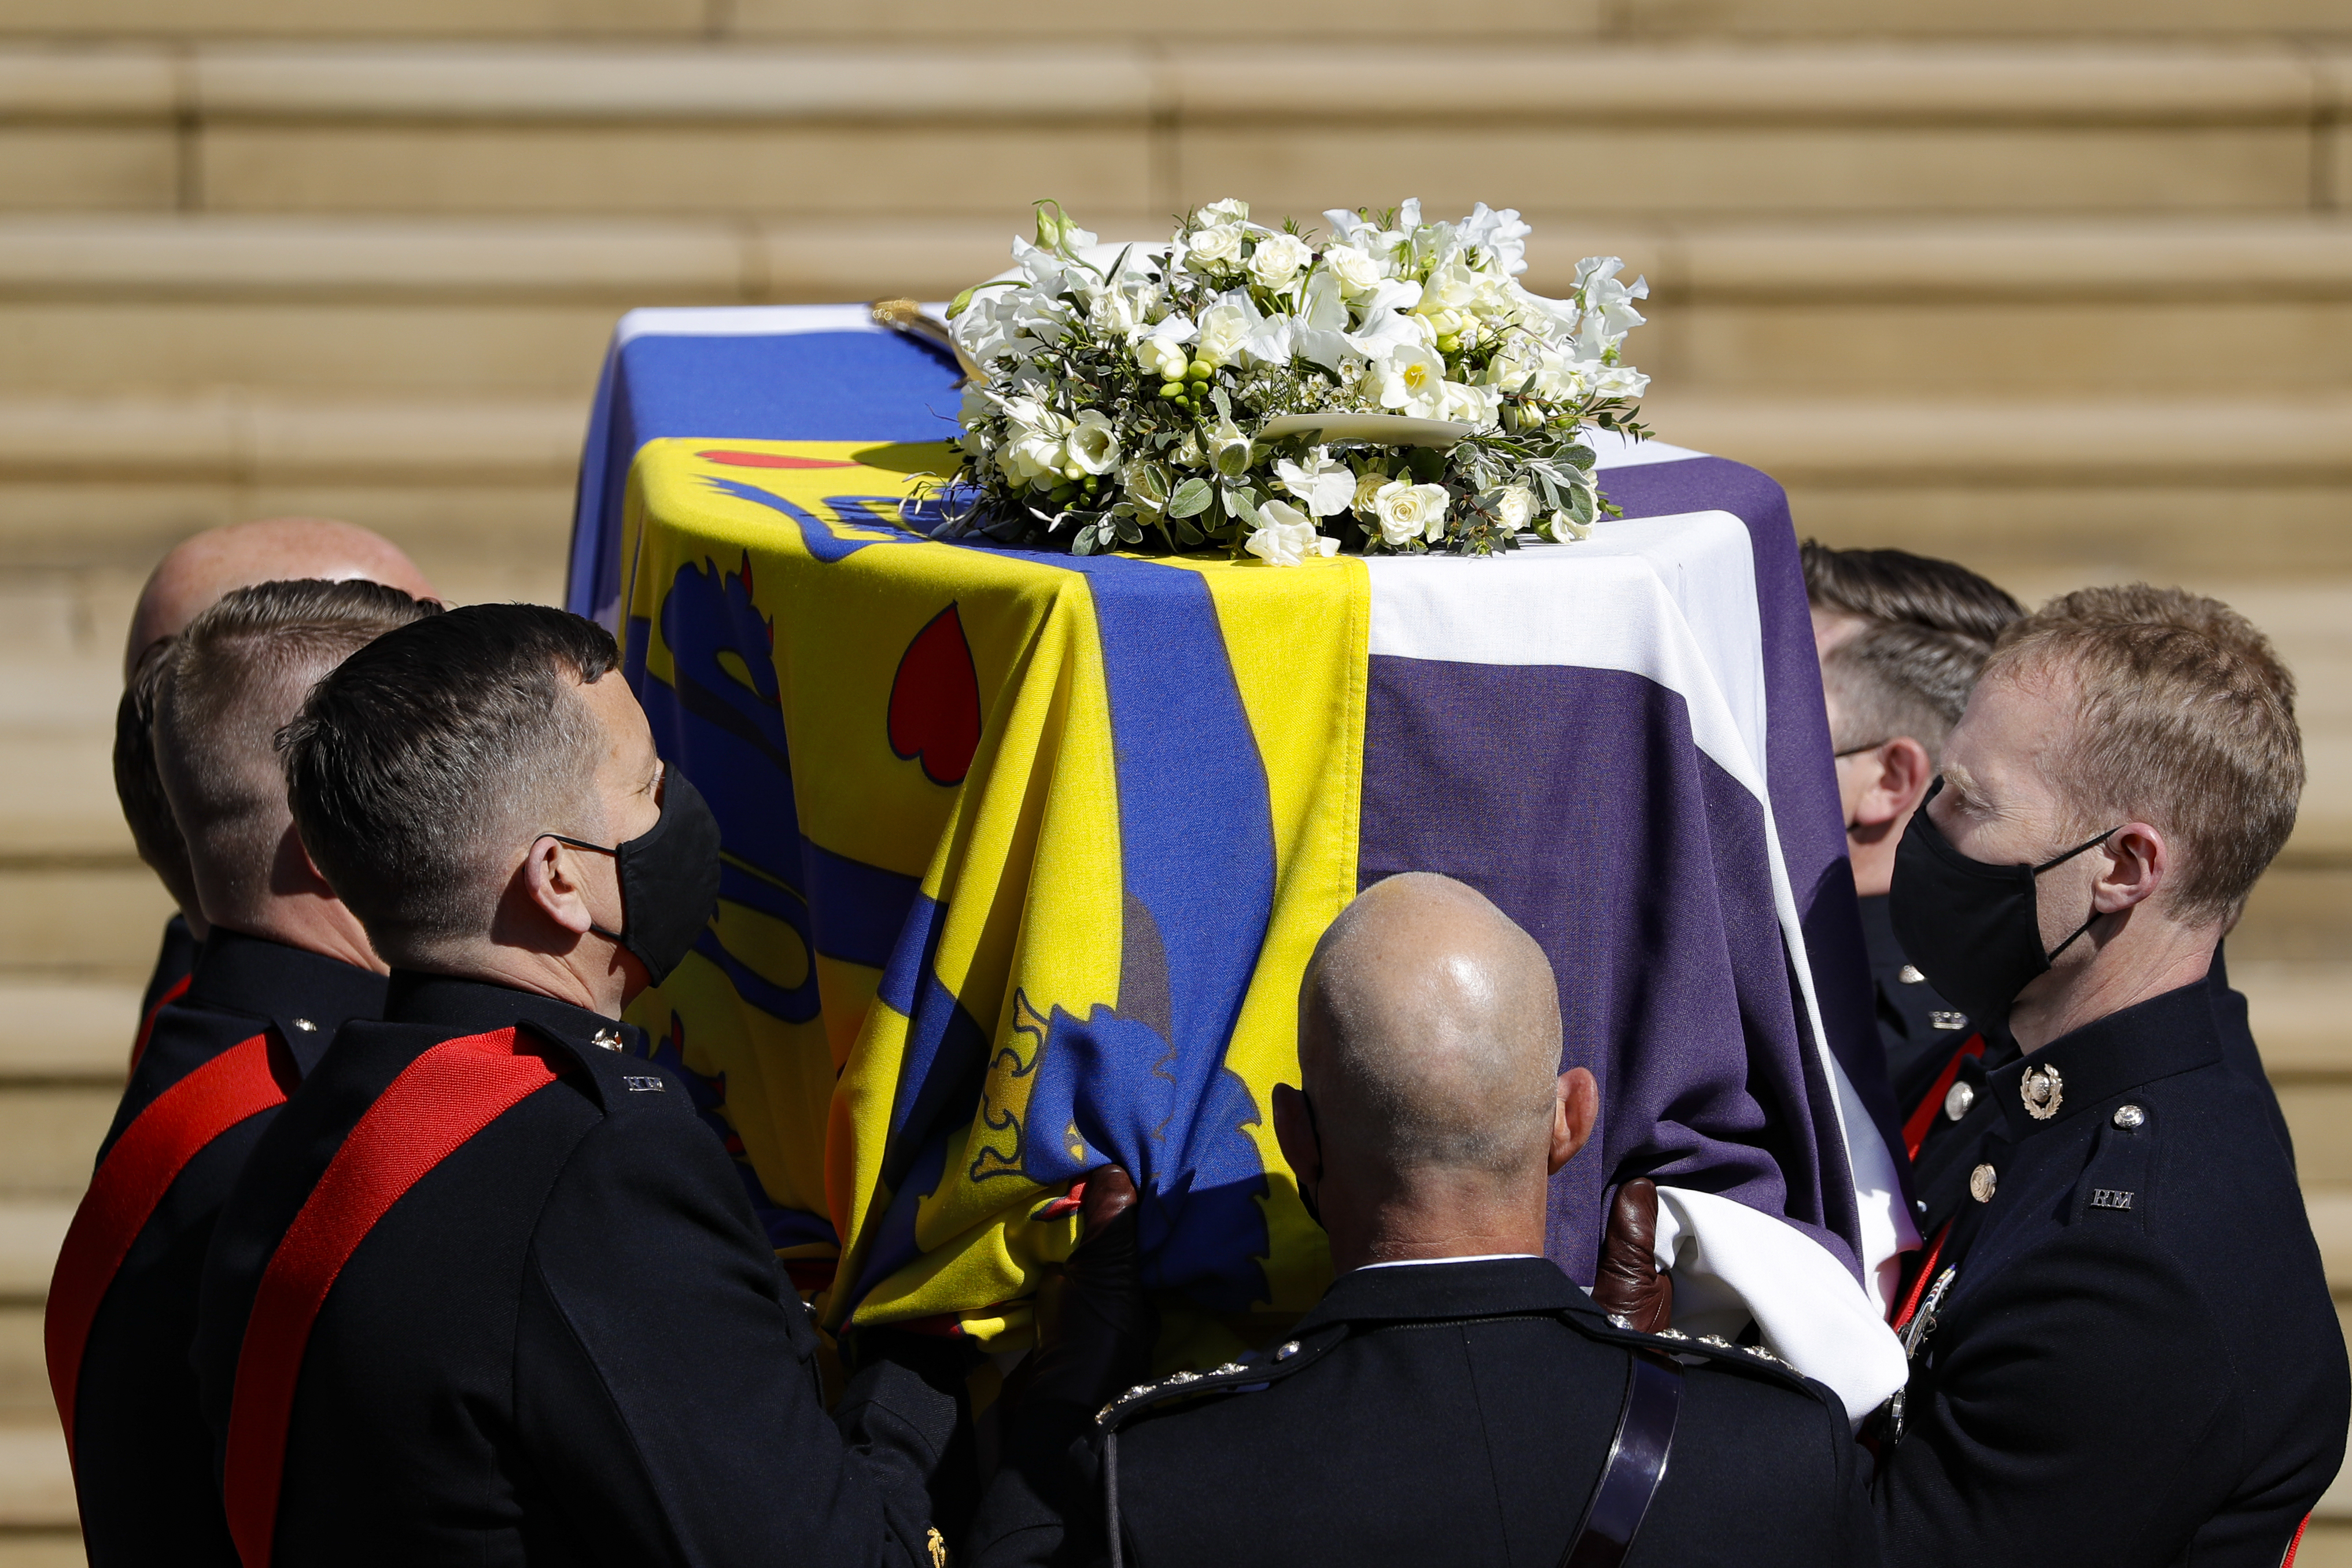 The coffin arrives at St George's Chapel for the funeral of Britain's Prince Philip inside Windsor Castle in Windsor, England, on April 17, 2021.